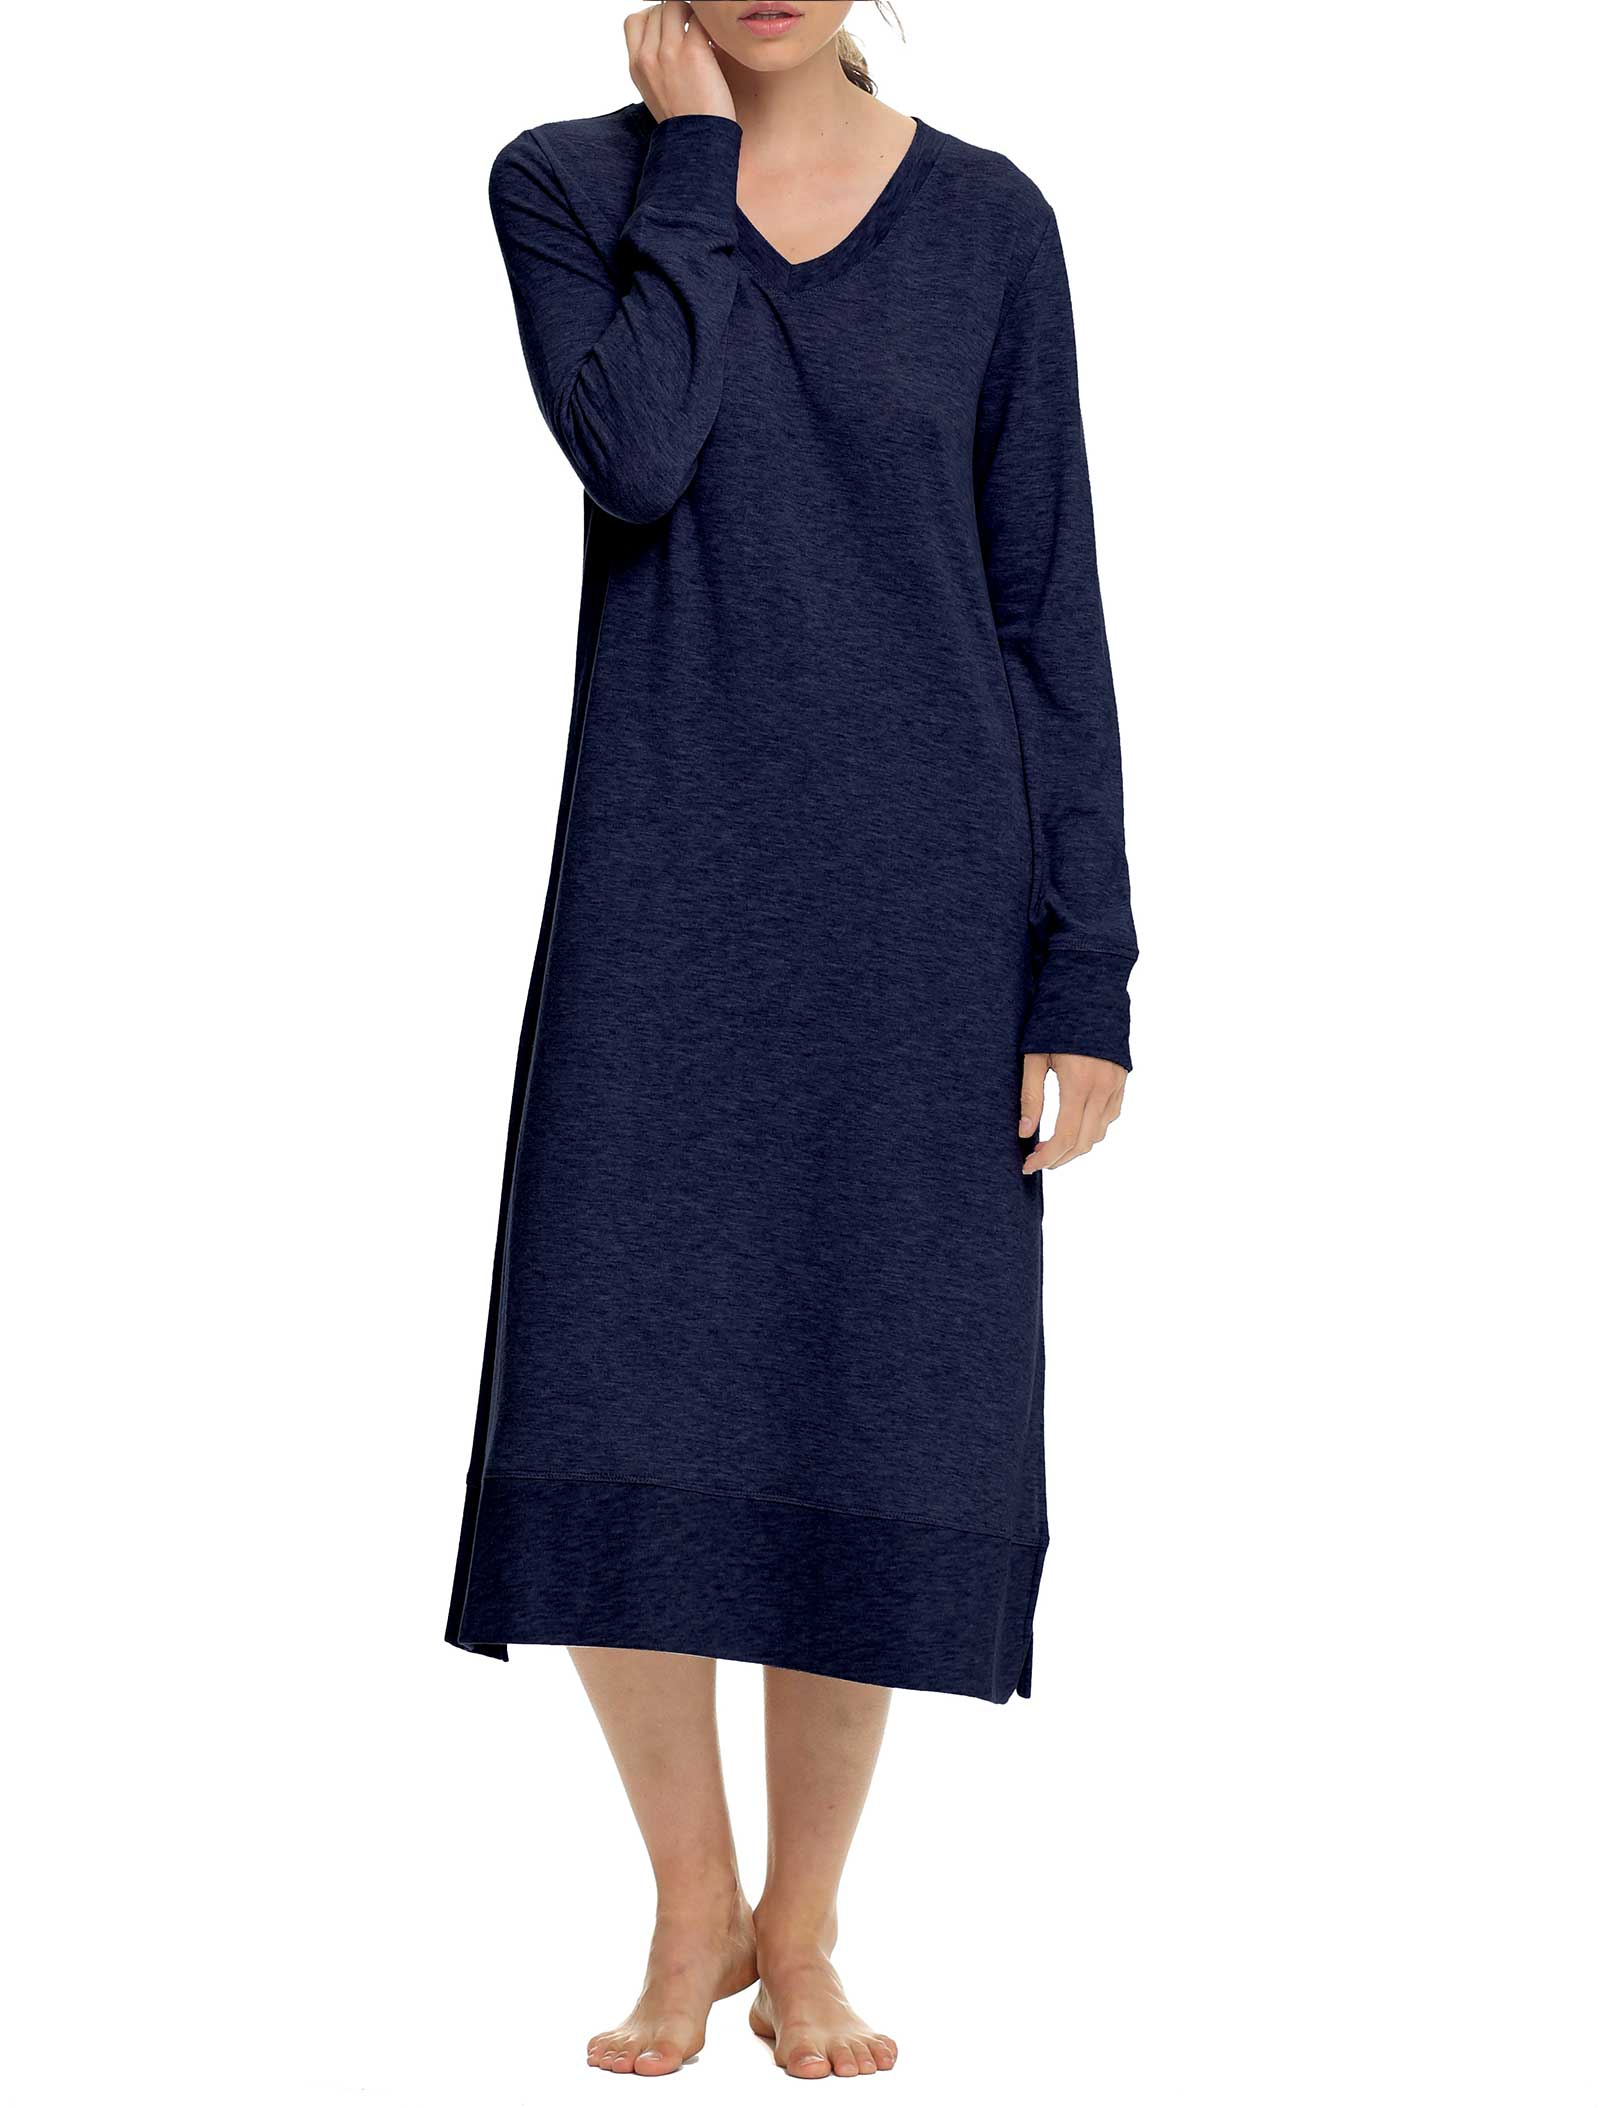 Feather Soft Nightgown in Navy